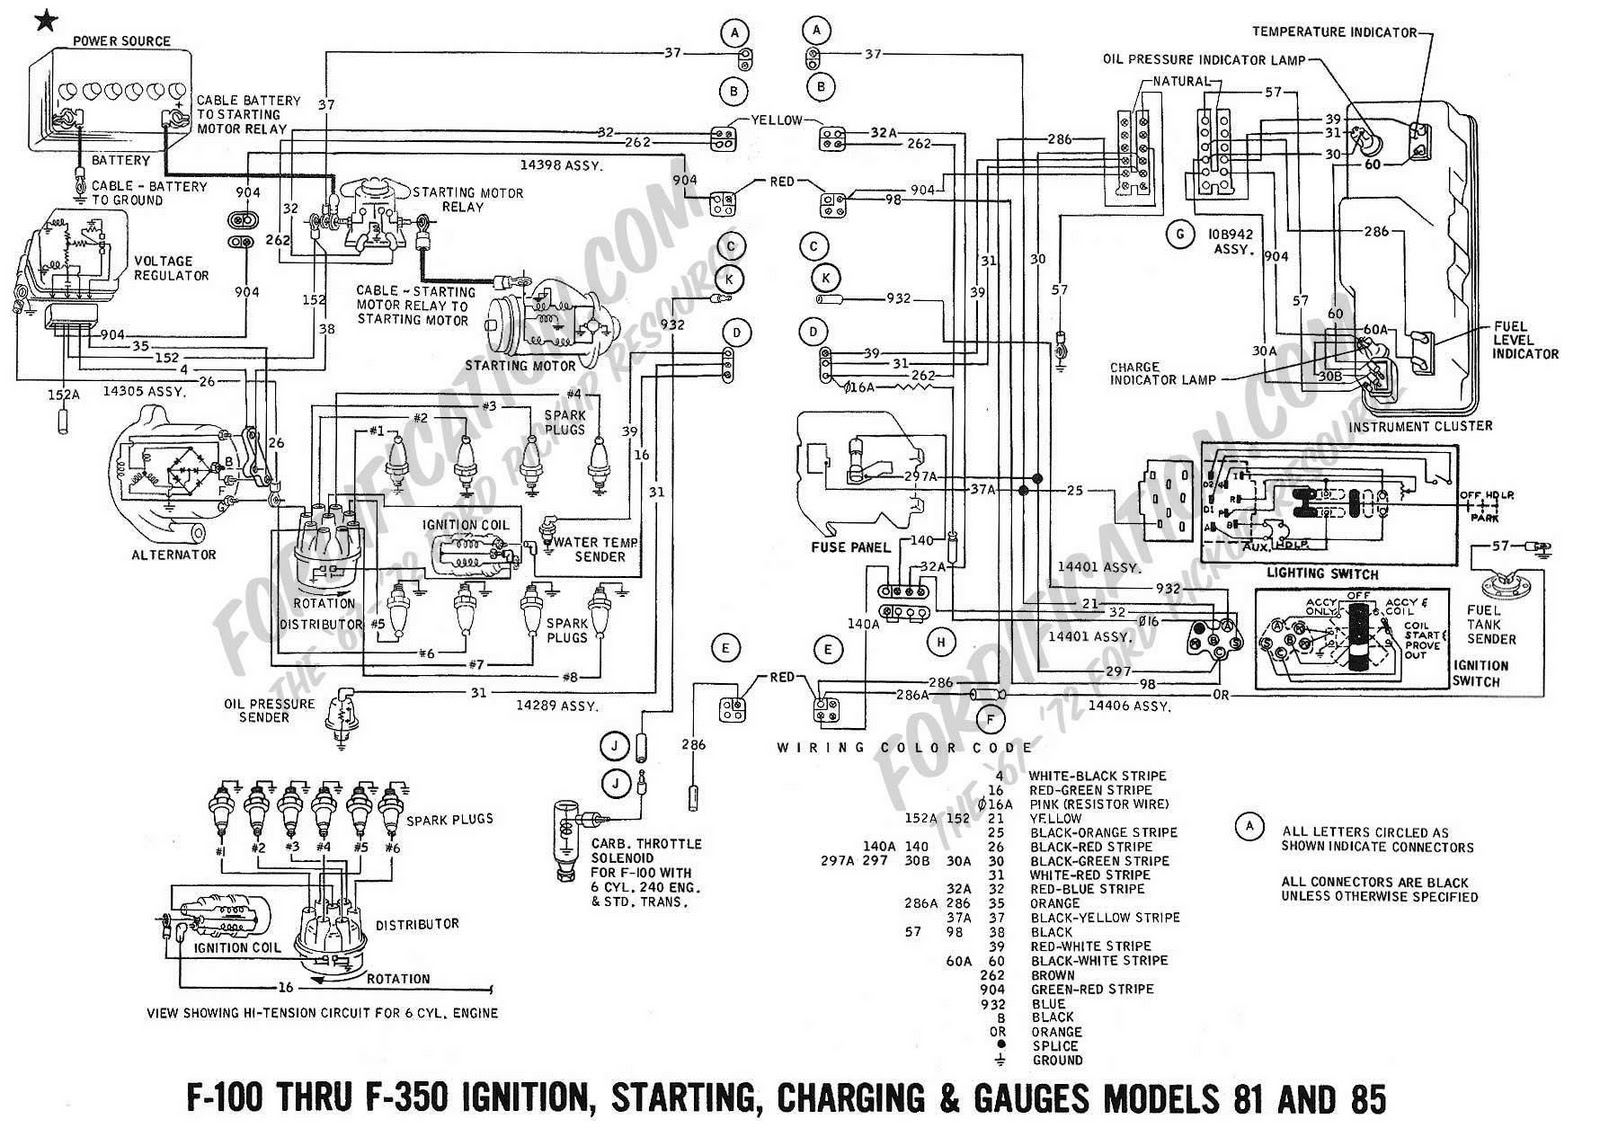 1973 Ford F100 Wiring Harness Diagram Wiring Diagram View A View A Zaafran It